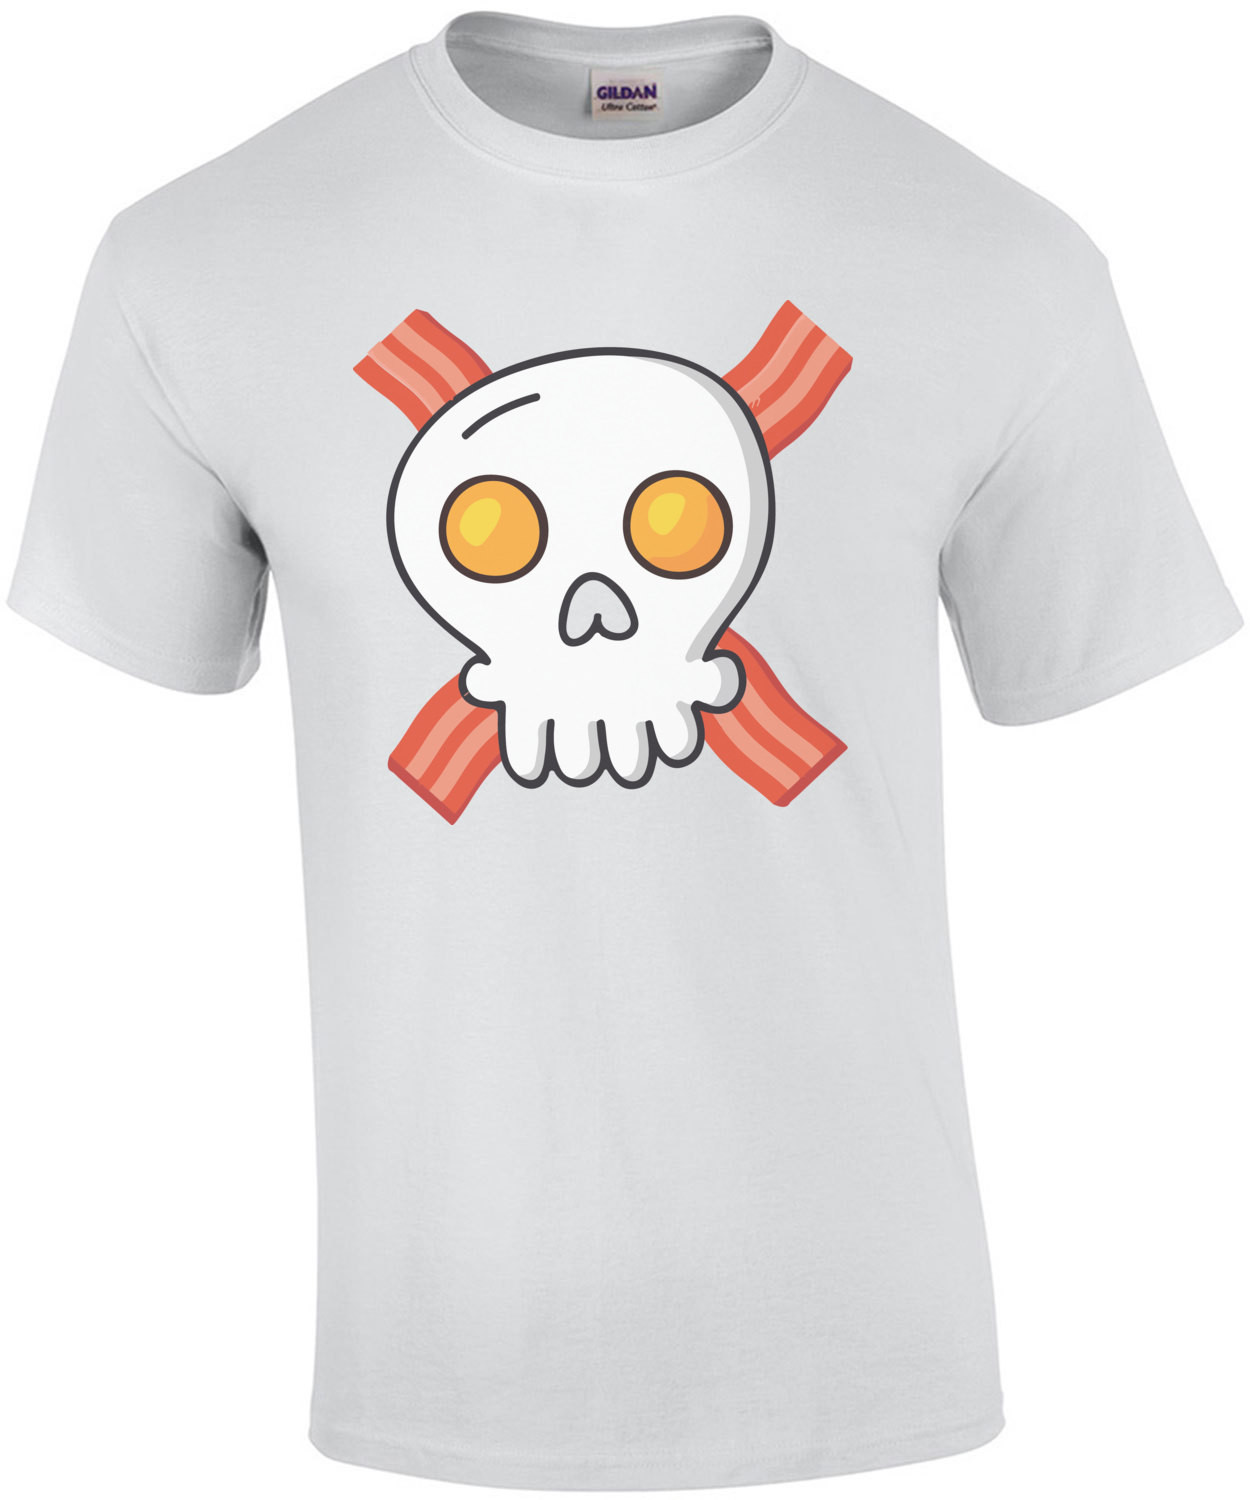 Eggs and bacon - skull and crossbones - funny breakfast t-shirt